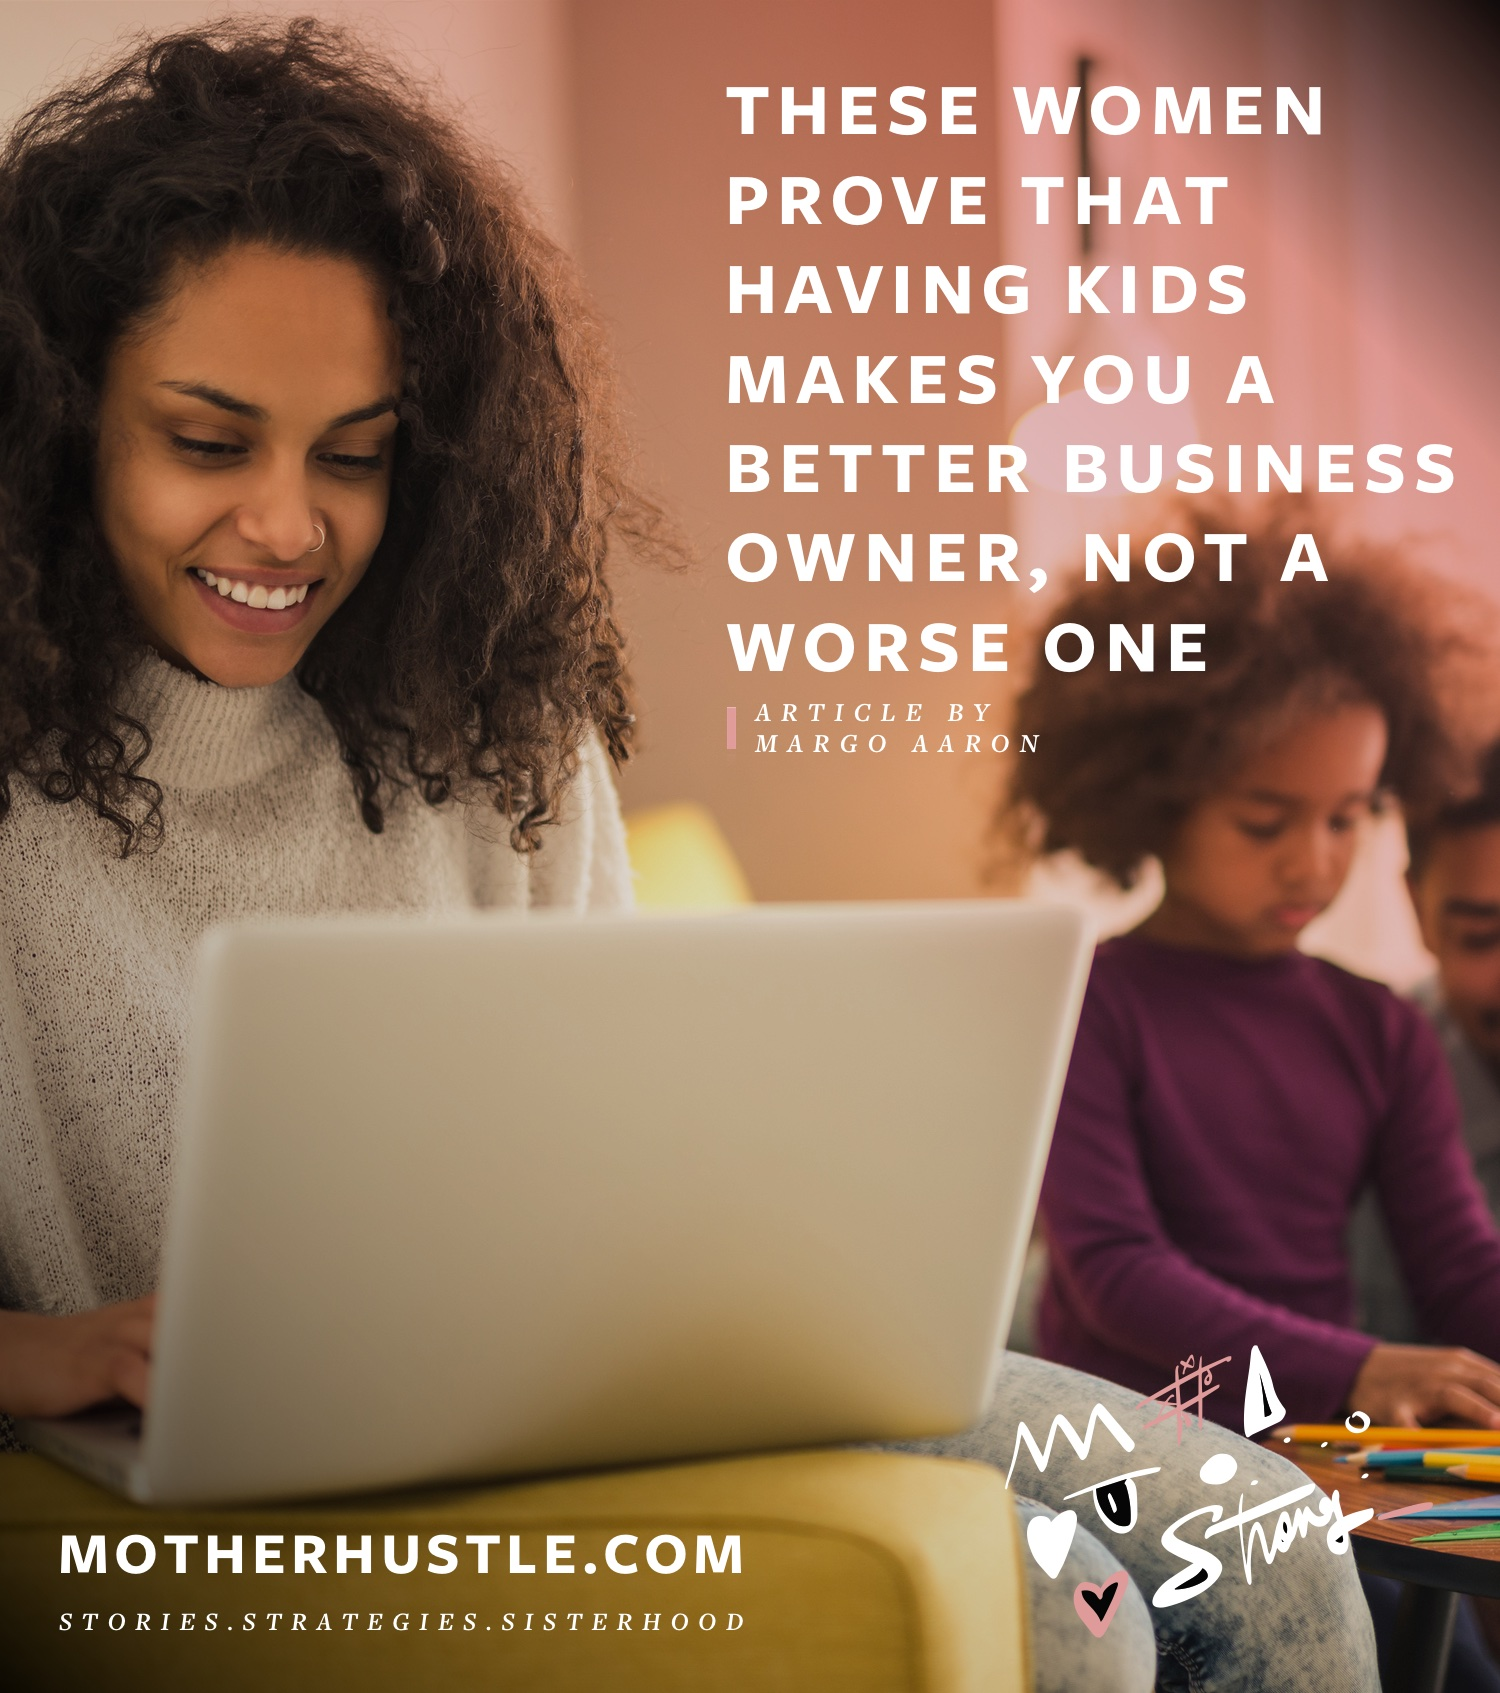 These Women Prove That Having Kids Makes You A Better Business Owner, Not A Worse One - by Margo Aaron for MotherHustle